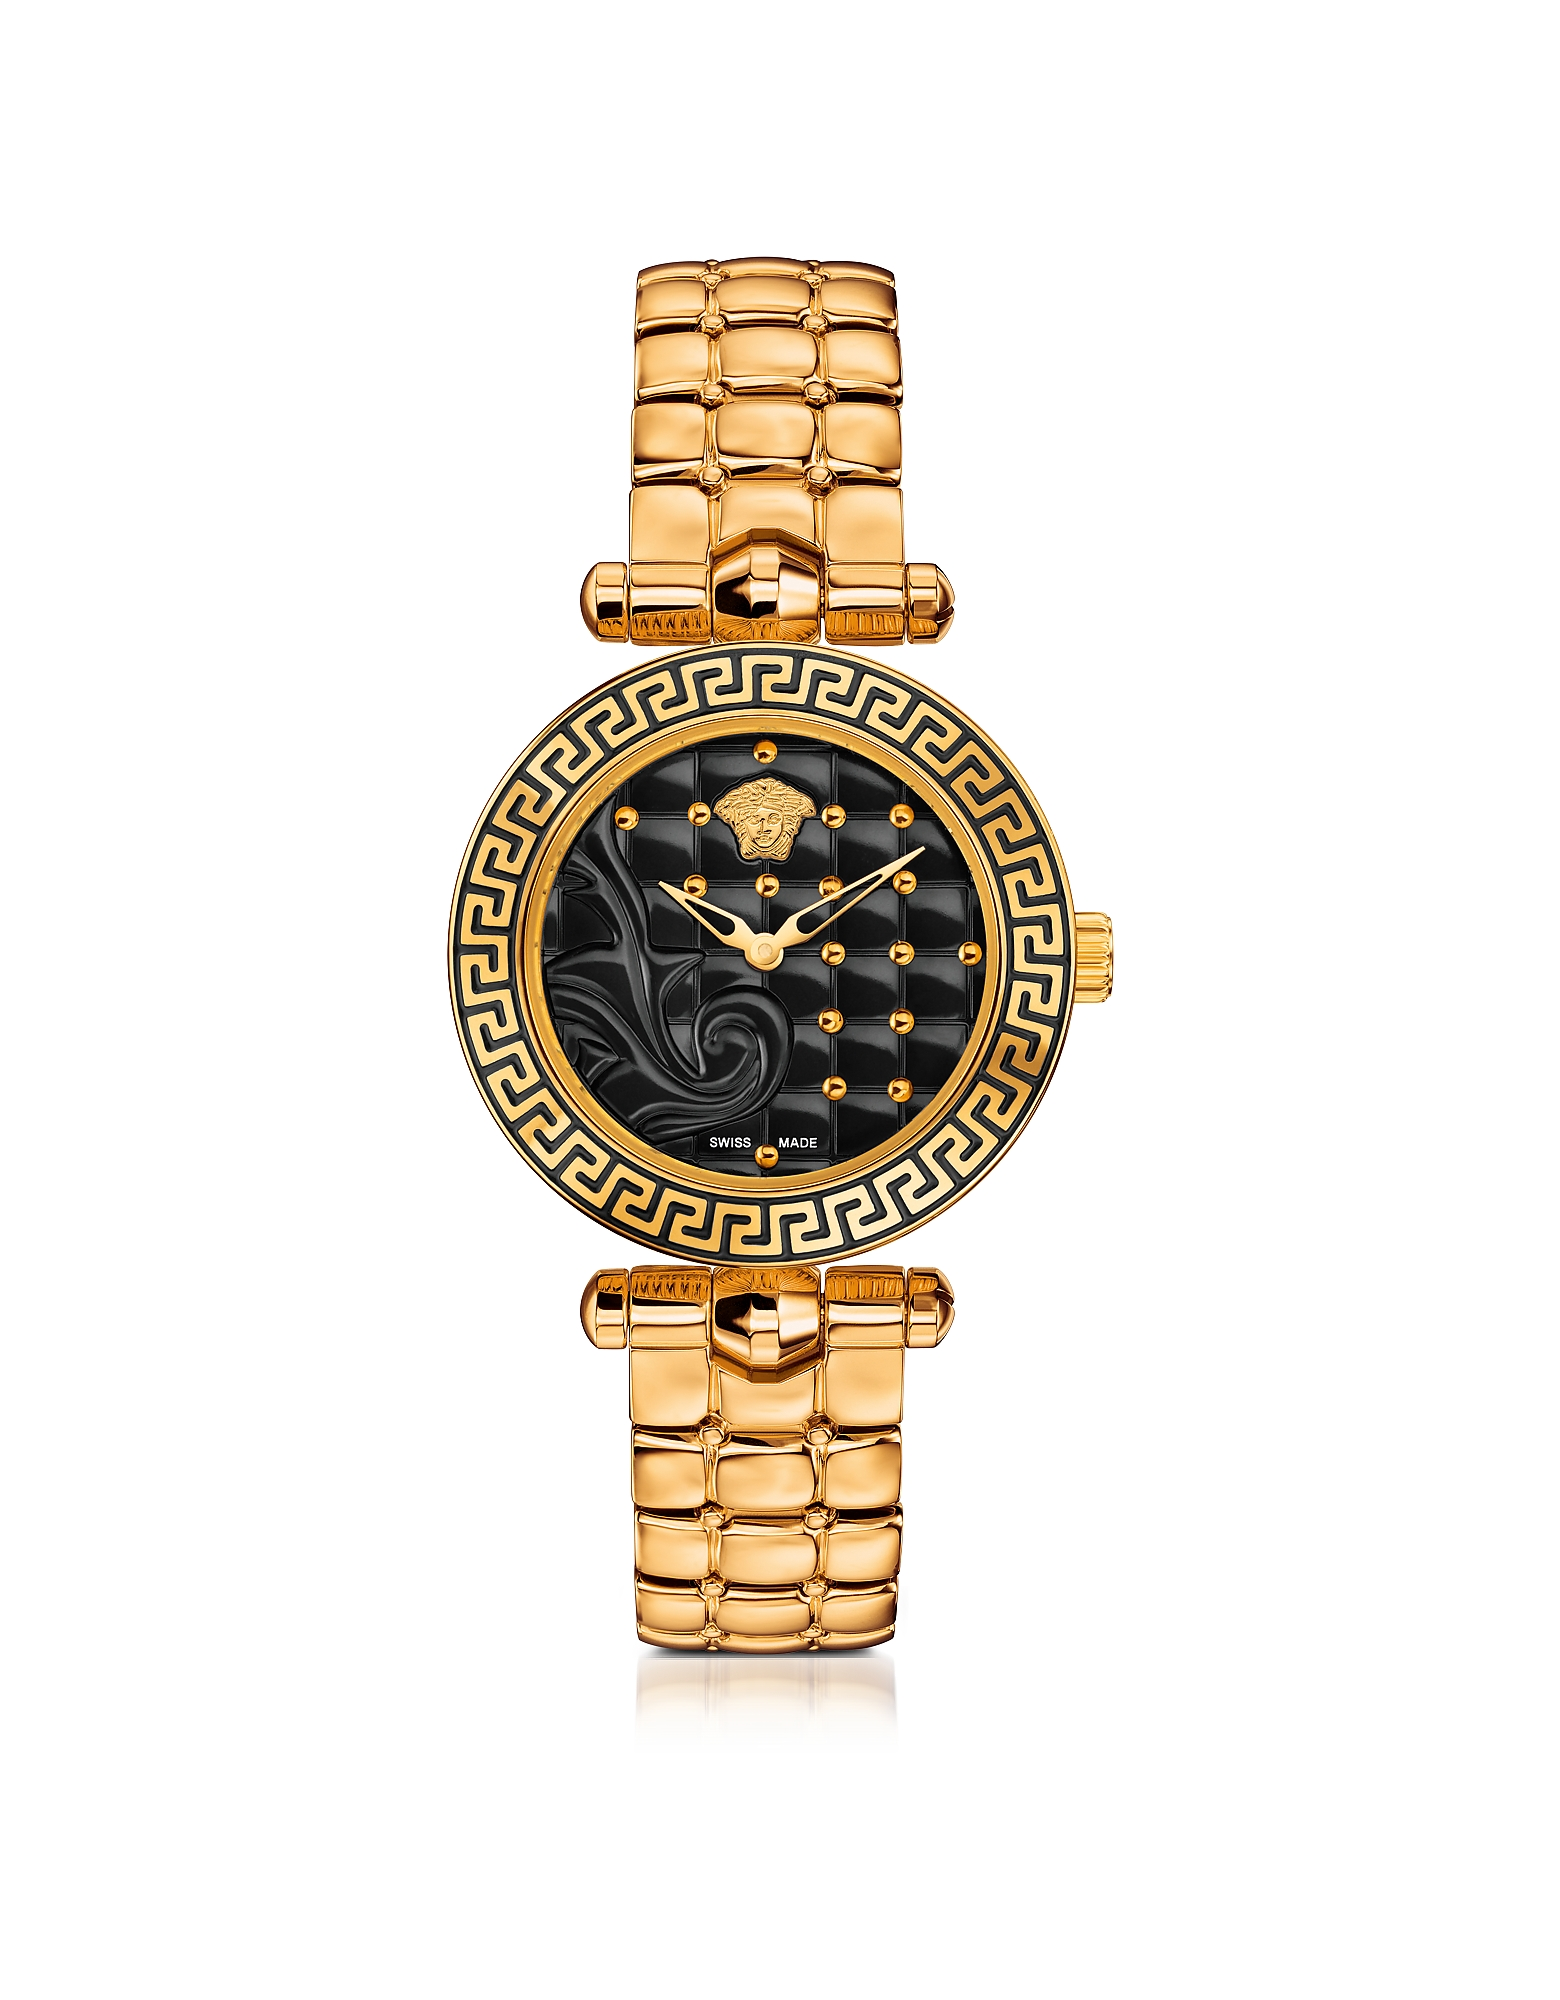 Versace Women's Watches, Micro Vanitas PVD Gold Plated Women's Watch w/Baroque Black Dial